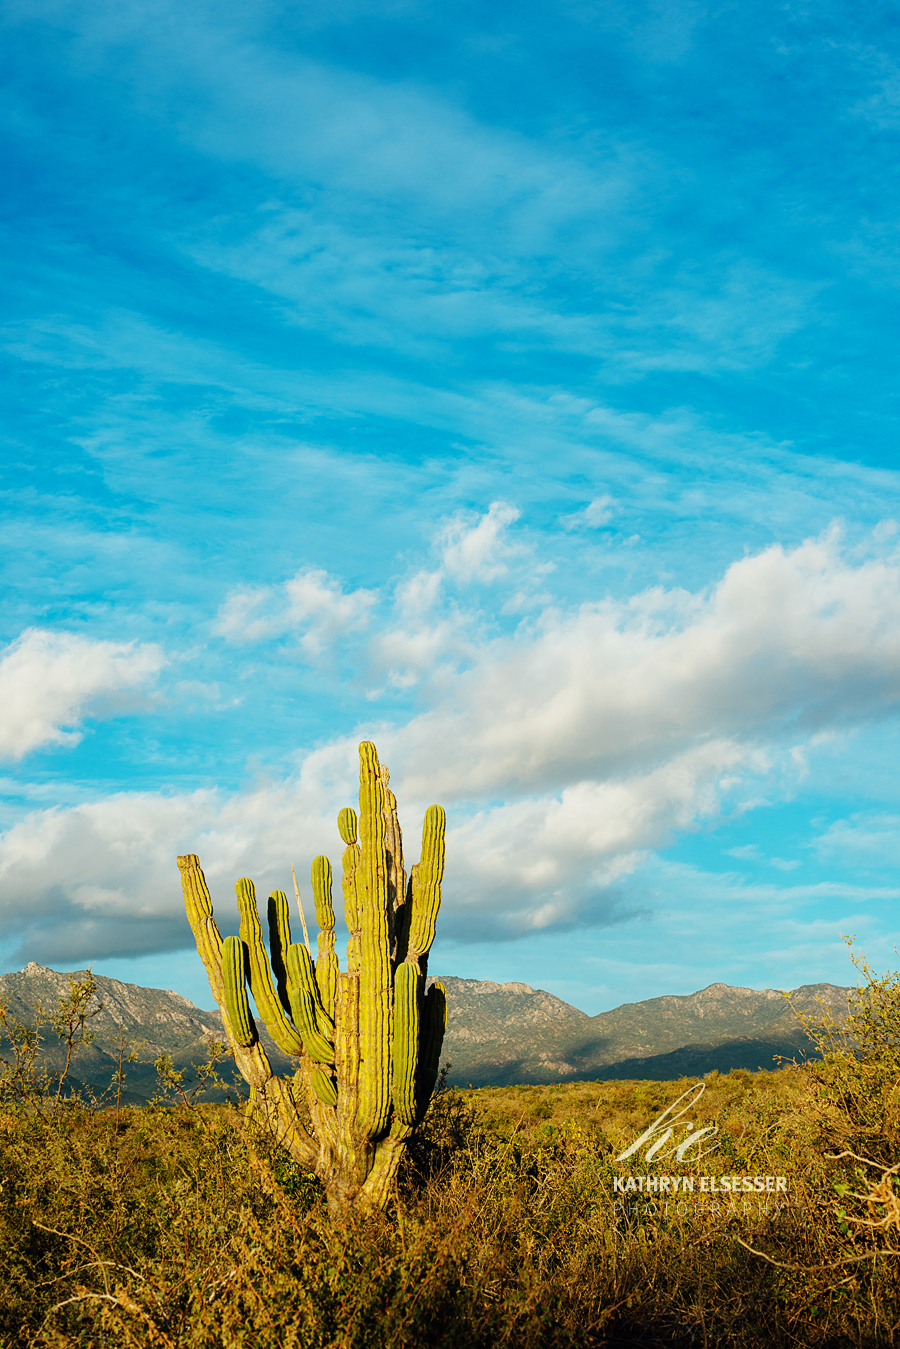 Cactus in the dessert in Baja, Mexico